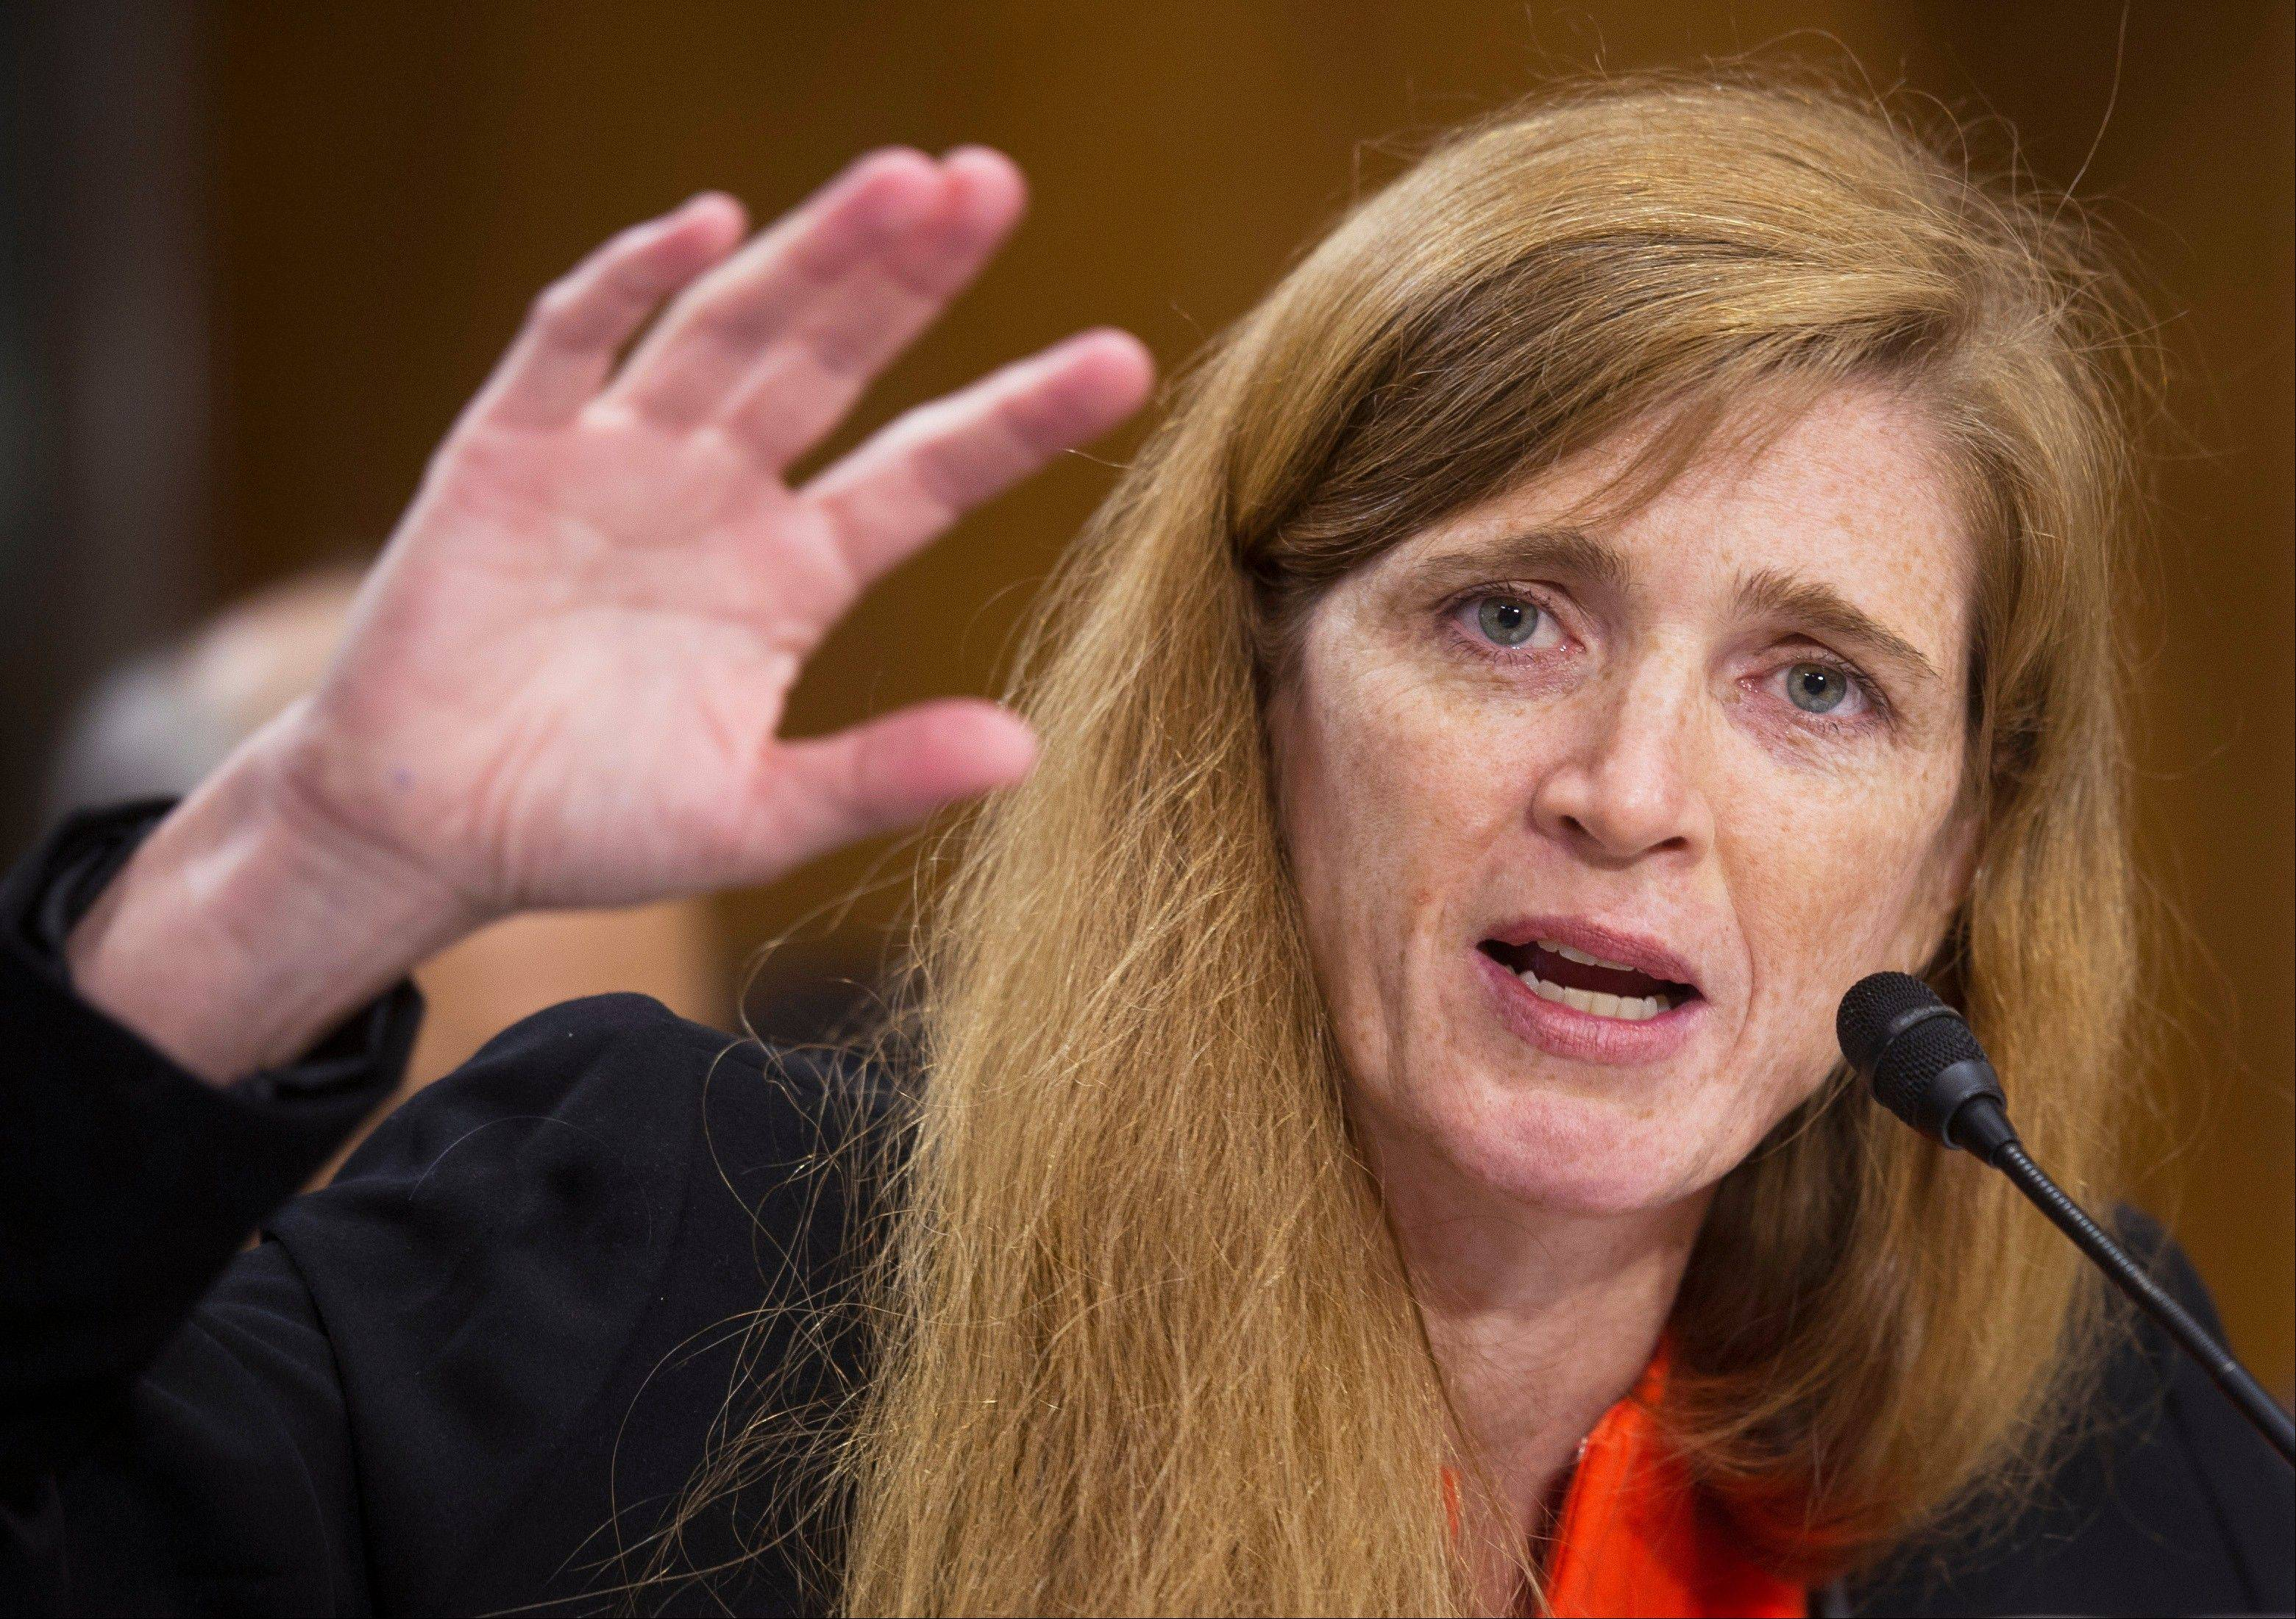 U.S. Ambassador to the U.N. nominee Samantha Power testifies last week on Capitol Hill in Washington.